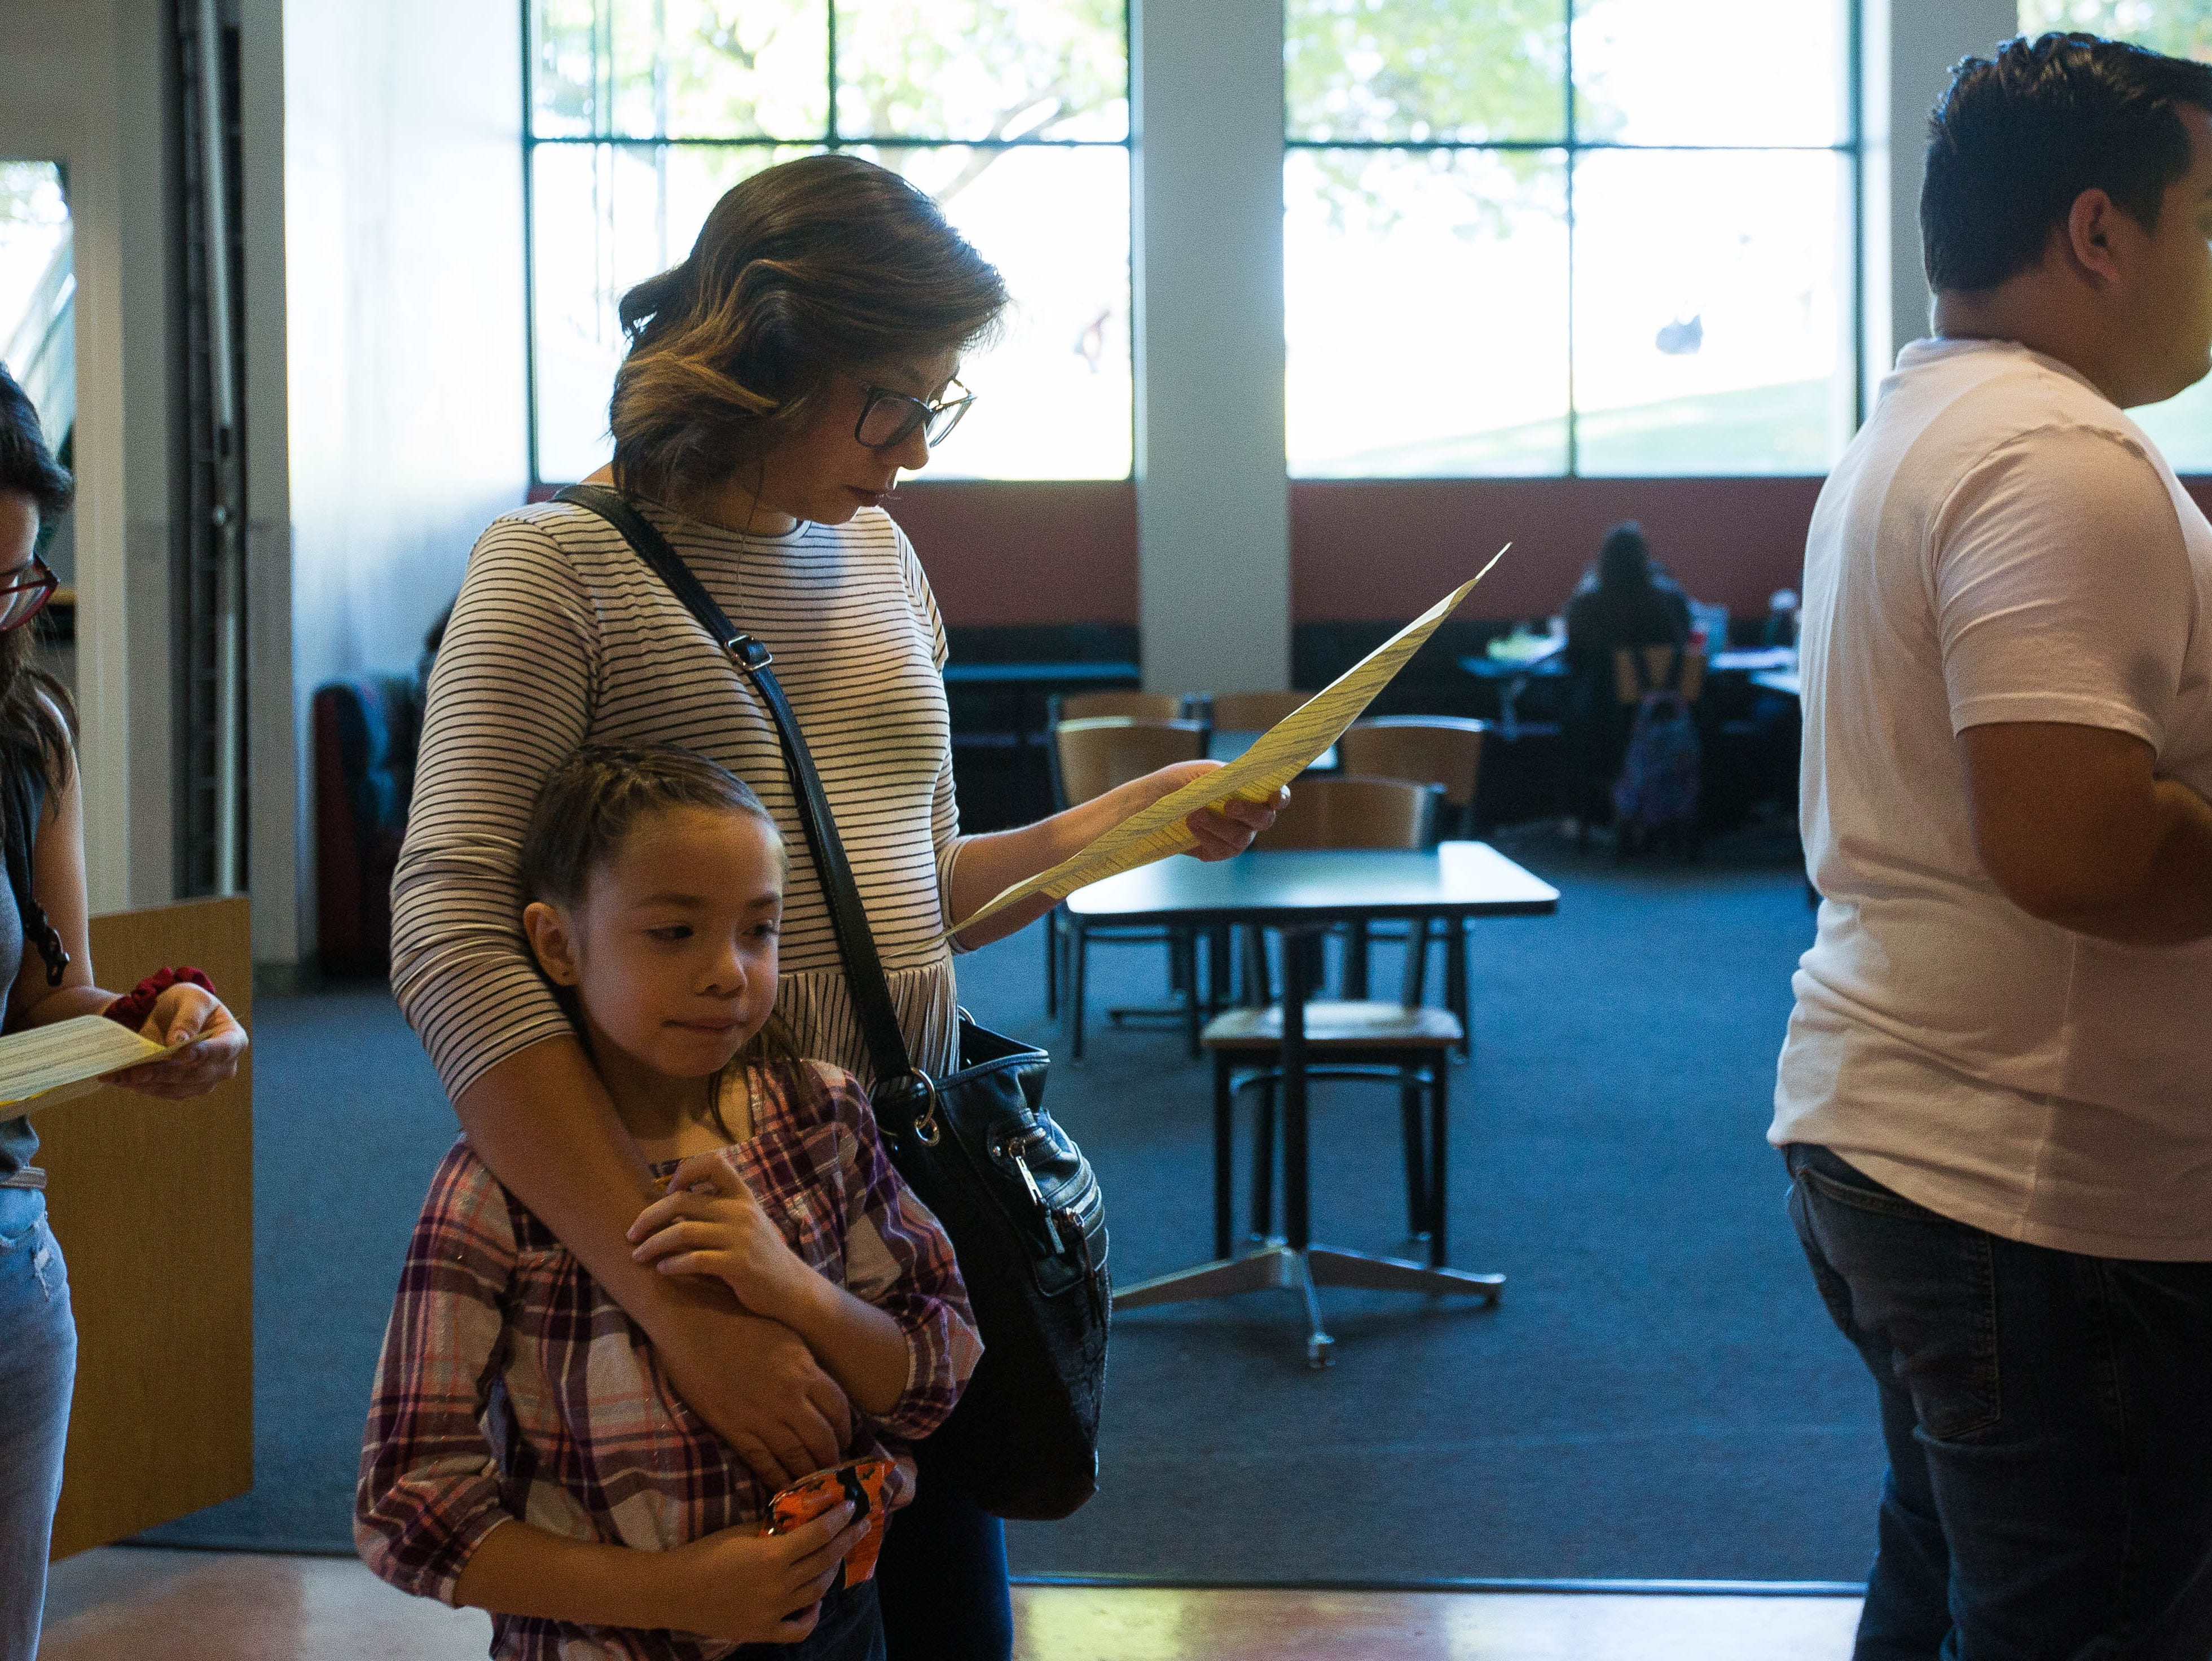 Cindy Moreno looks over a sample ballot as she waits with her daughter Mai Hemp, 6, in the line to vote at Corbett Center at New Mexico State University, Tuesday November 6, 2018. Moreno said her daughter was out of school and she brought her to the polling station to see what voting was all about.